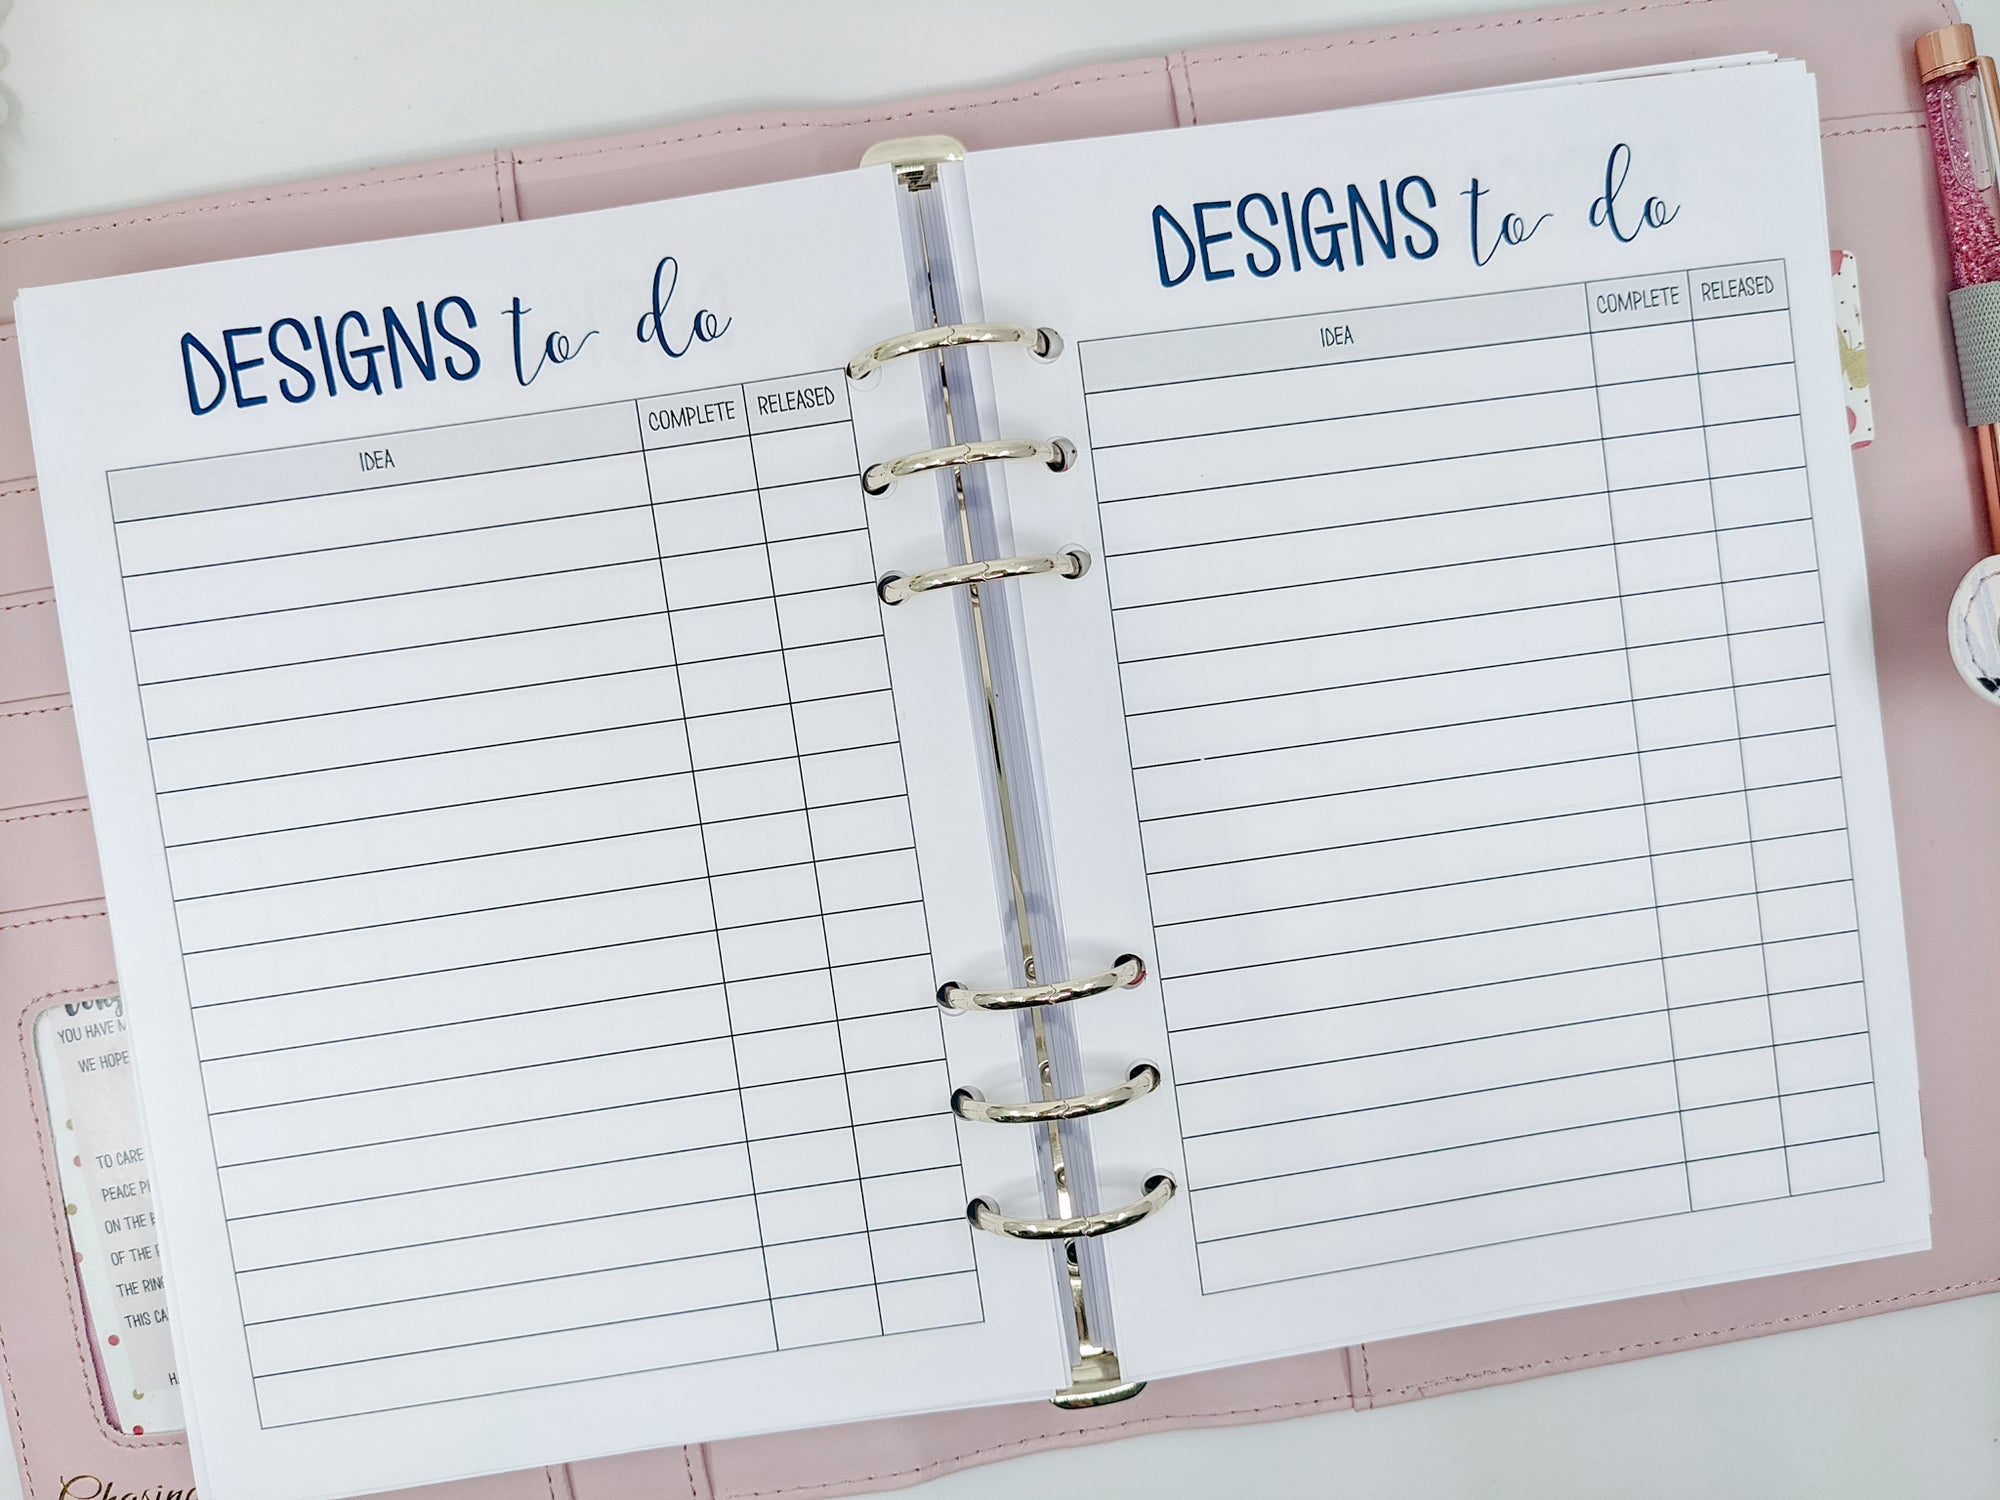 A5 Designs to Do Planner Inserts for Business Owners